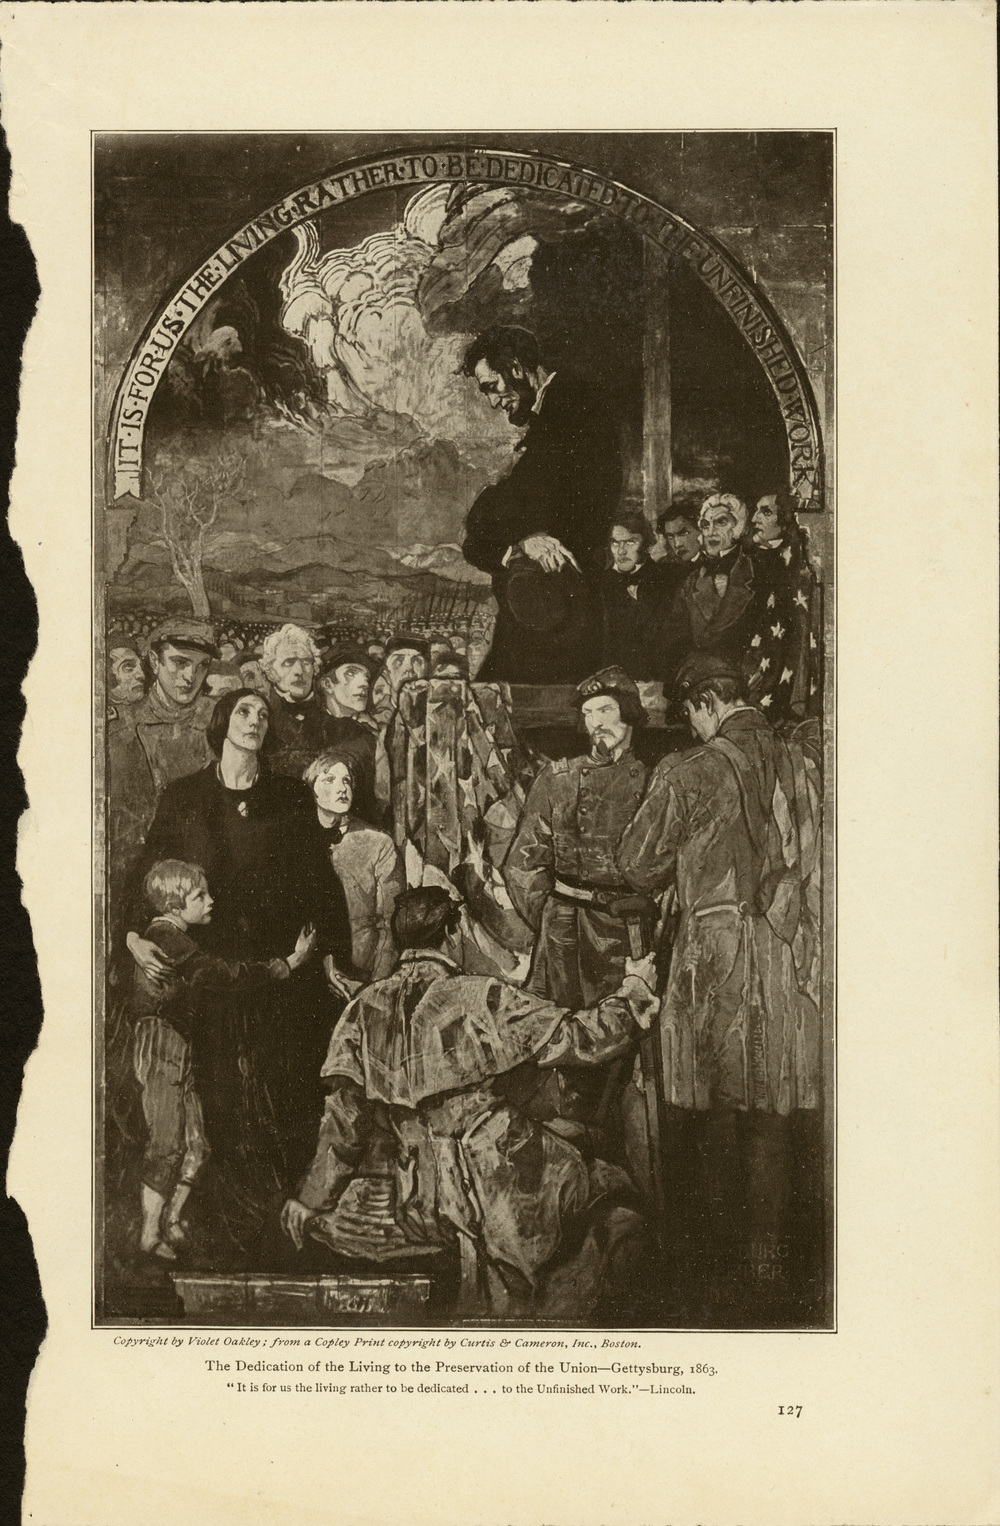 Violet Oakley, The Dedication of the Living to the Preservation of the Union. Senate Murals, Pennsylvania Capitol Building. Dedicated in 1917.